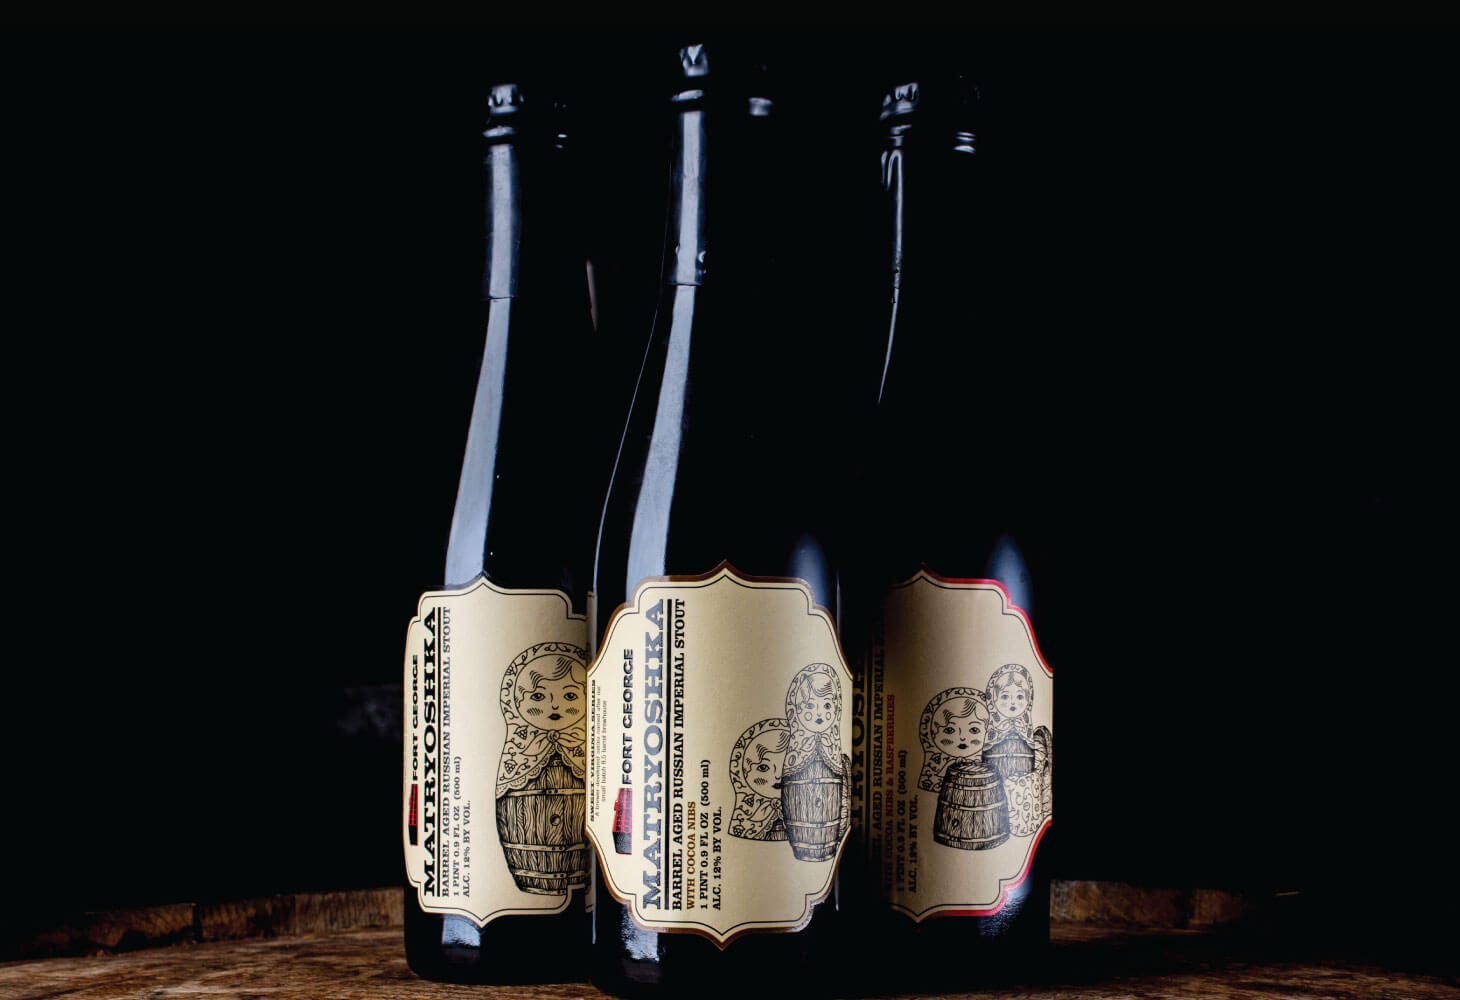 Image of Matryoshka Bourbon Barrel Aged Russian Imperial Stout from Fort George Brewery's Sweet Virginia Series